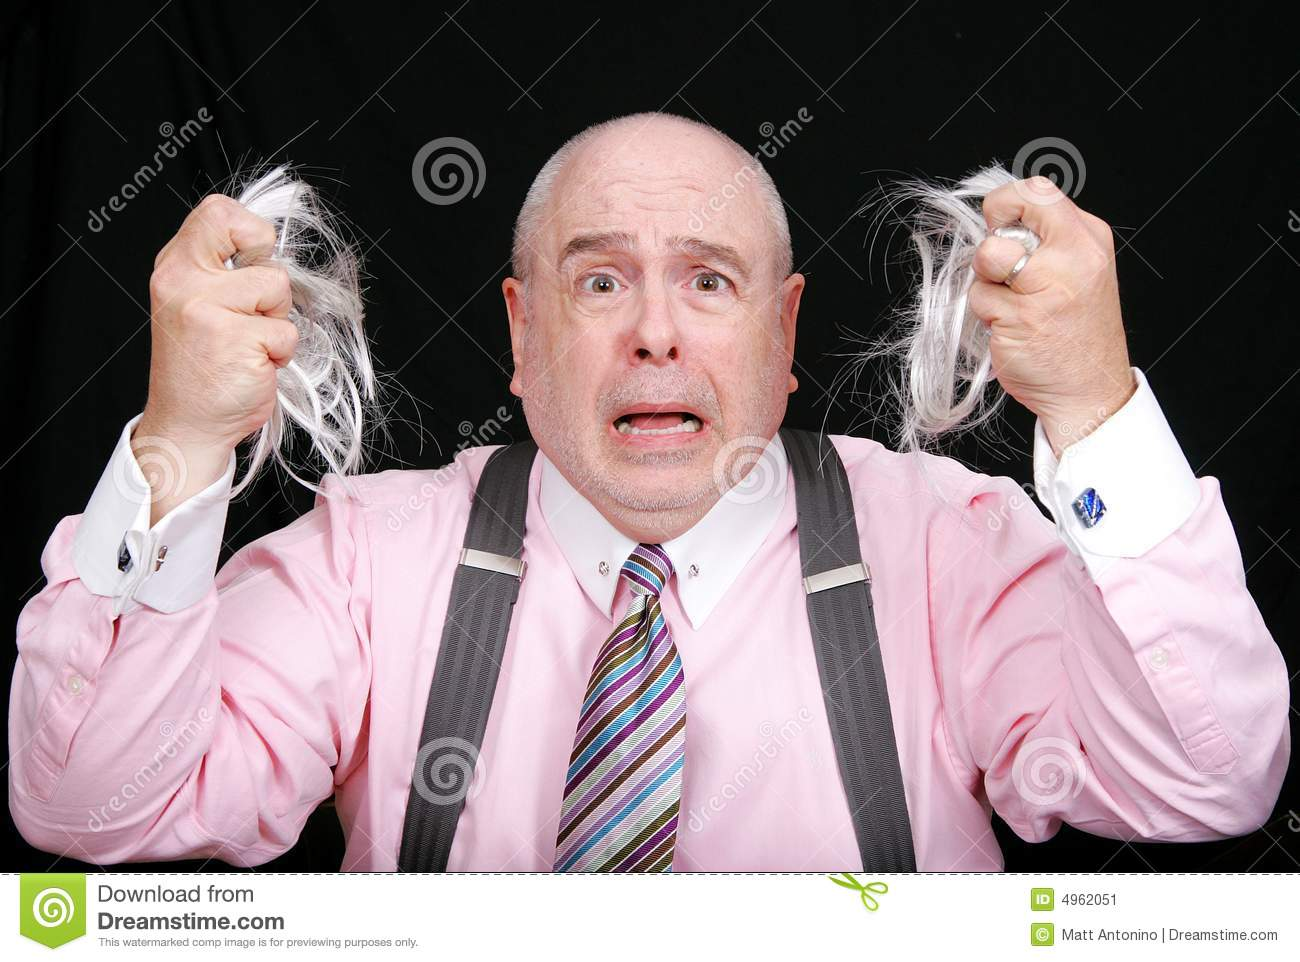 Man pulling his hair out clipart.